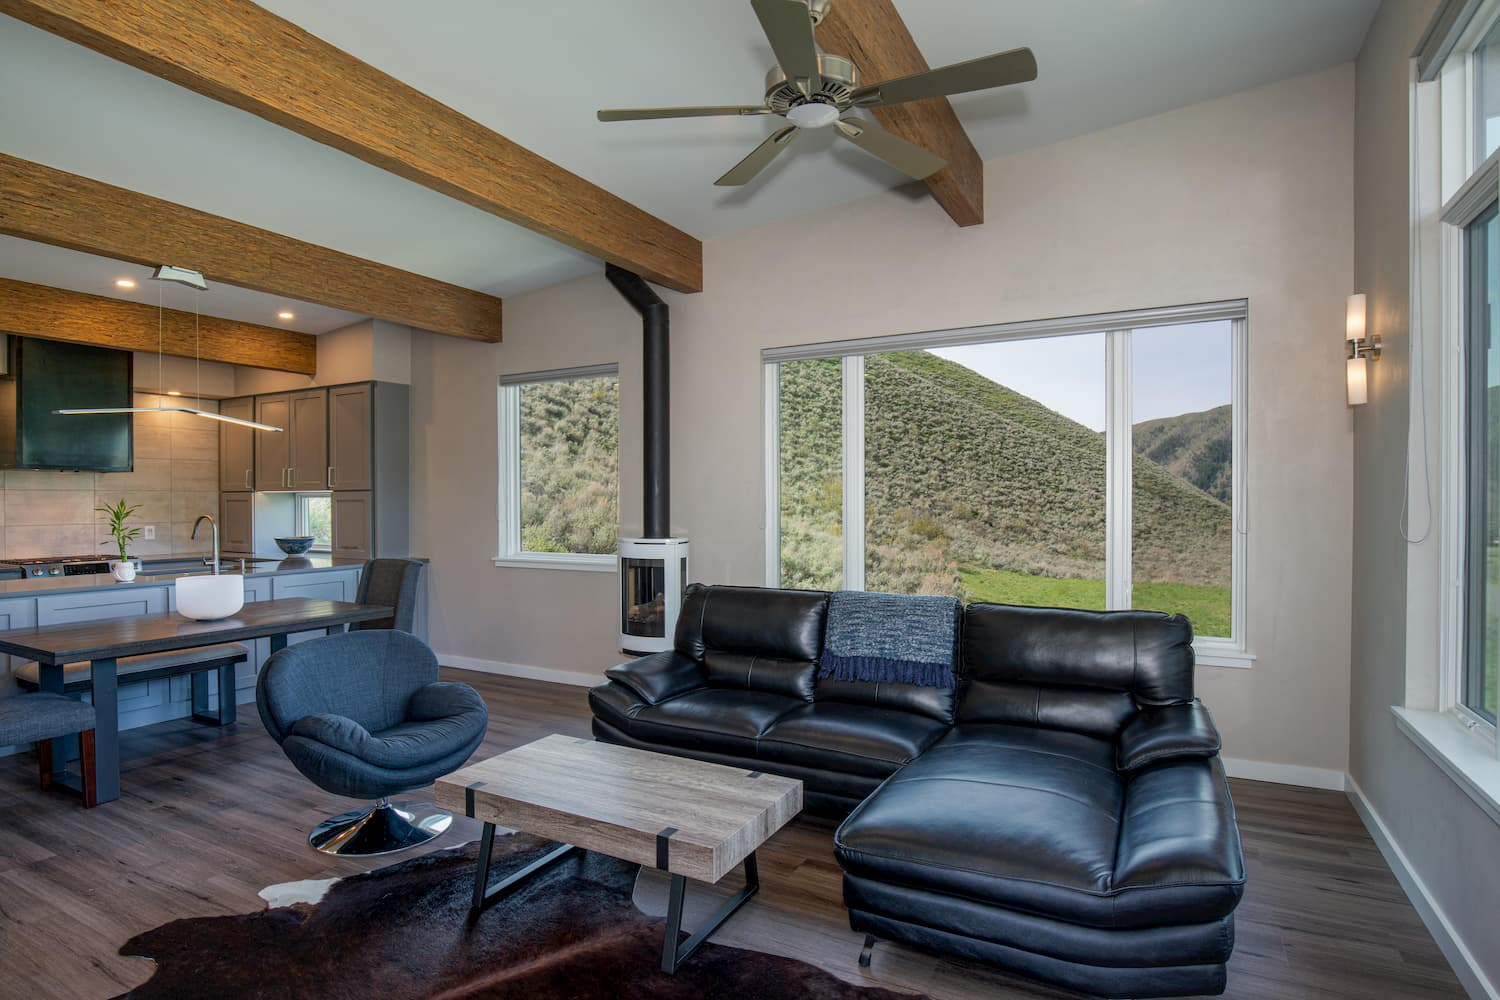 Hailey home living room entertaining area with beautiful hillside view through Pella windows